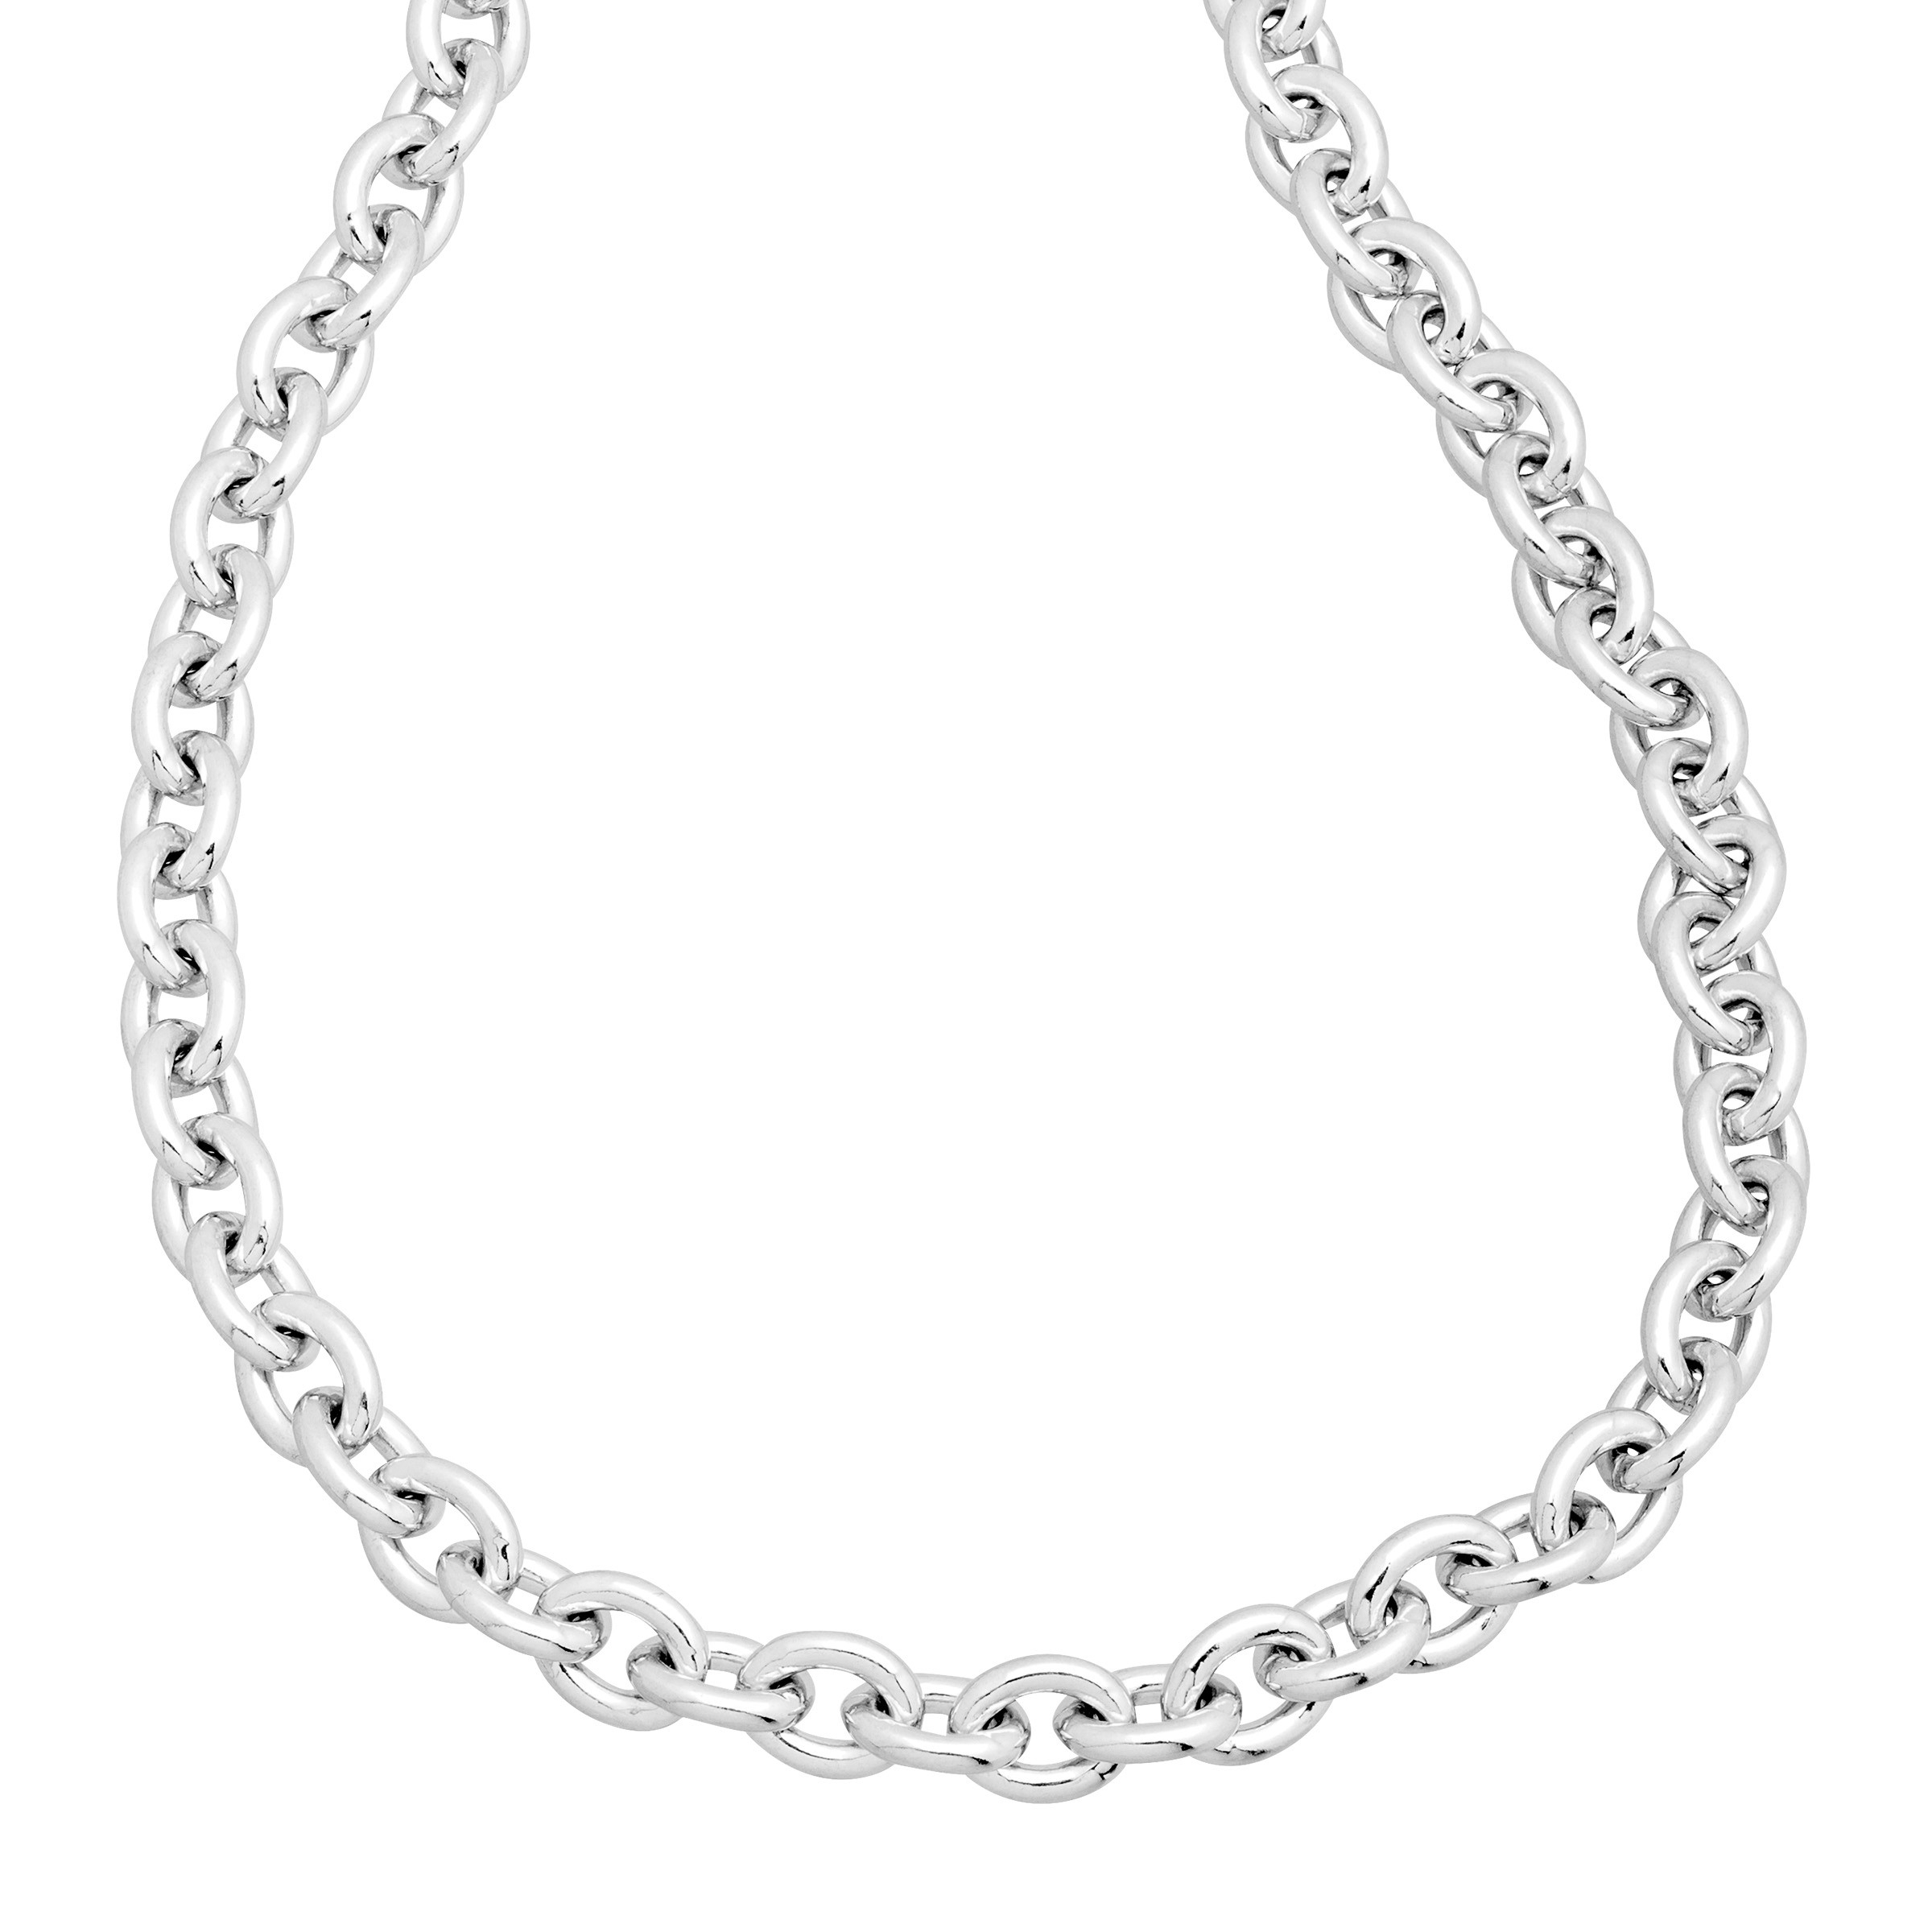 Details About Men's Cable Chain Necklace In Sterling Silver Intended For Most Current Cable Chain Necklaces (Gallery 1 of 25)